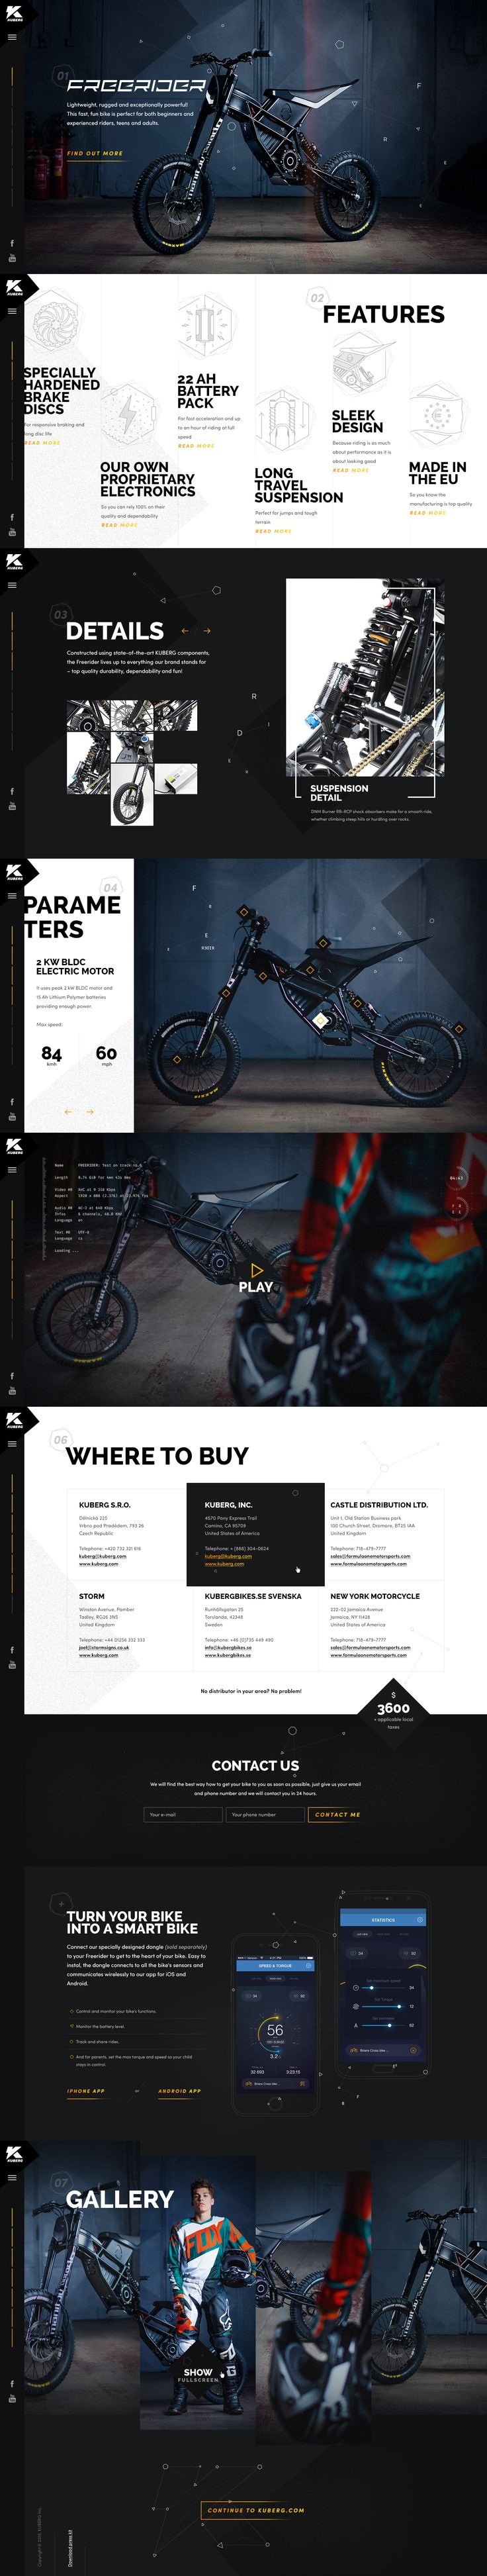 Following from last week's Stores Inspiration, I thought it would be great to share more in-depth UI design by putting together this collection of